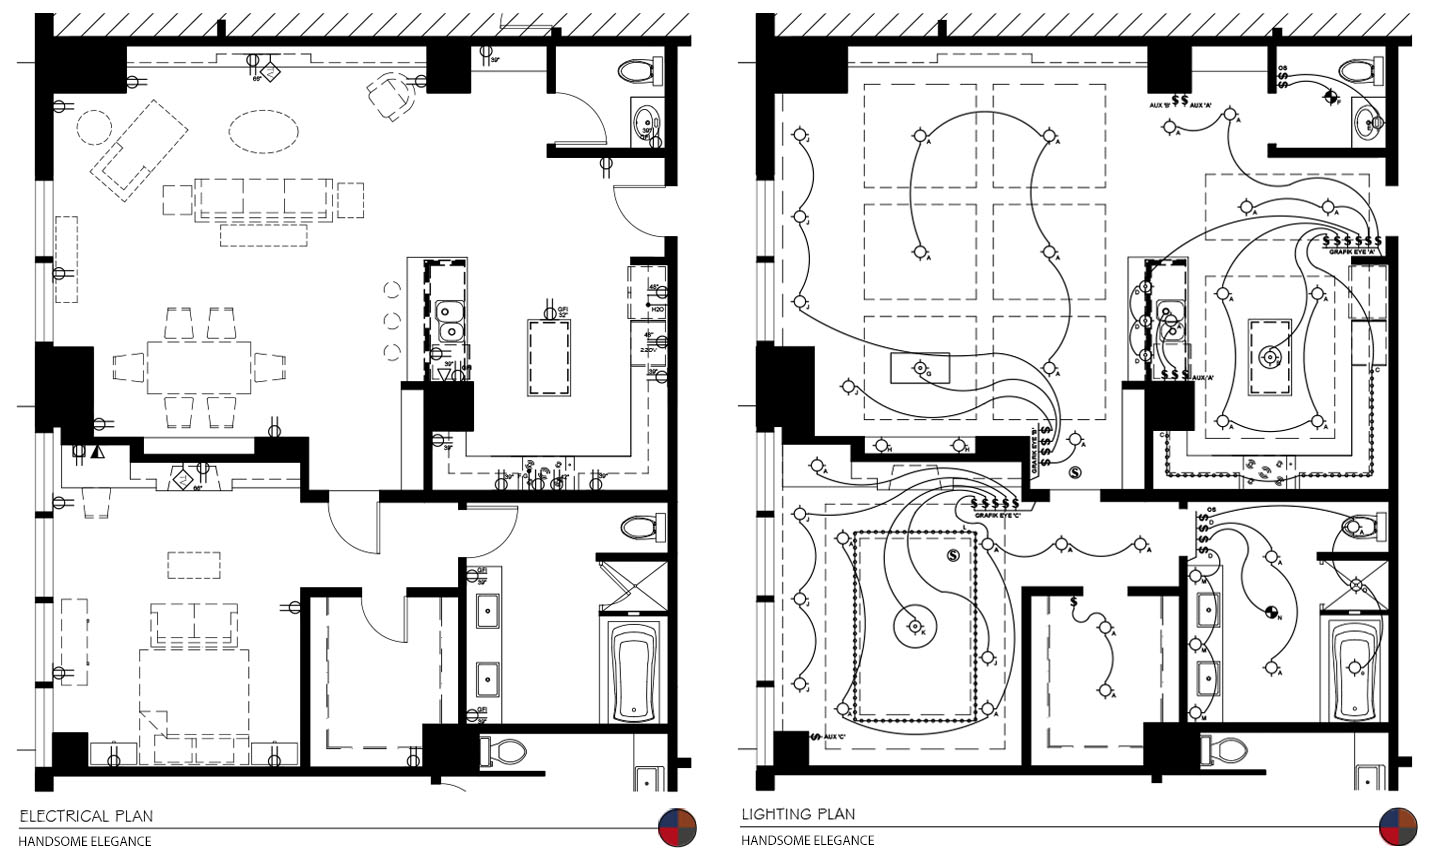 electrical plan for house